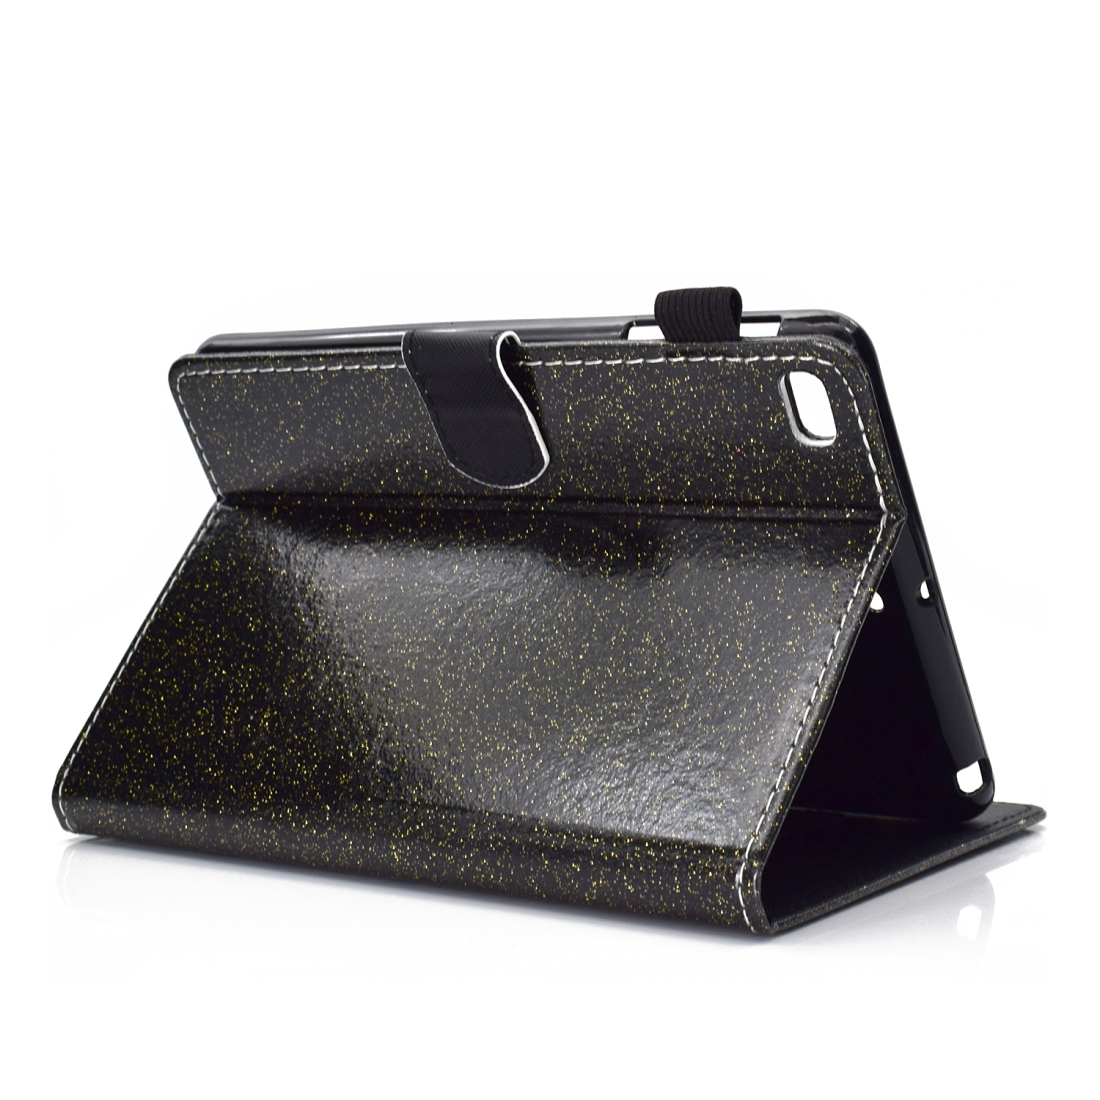 Bling Glitter Leather iPad Mini 5 Case, Also Fits iPad Mini 1,2,3,4, With Sleeve (Black)